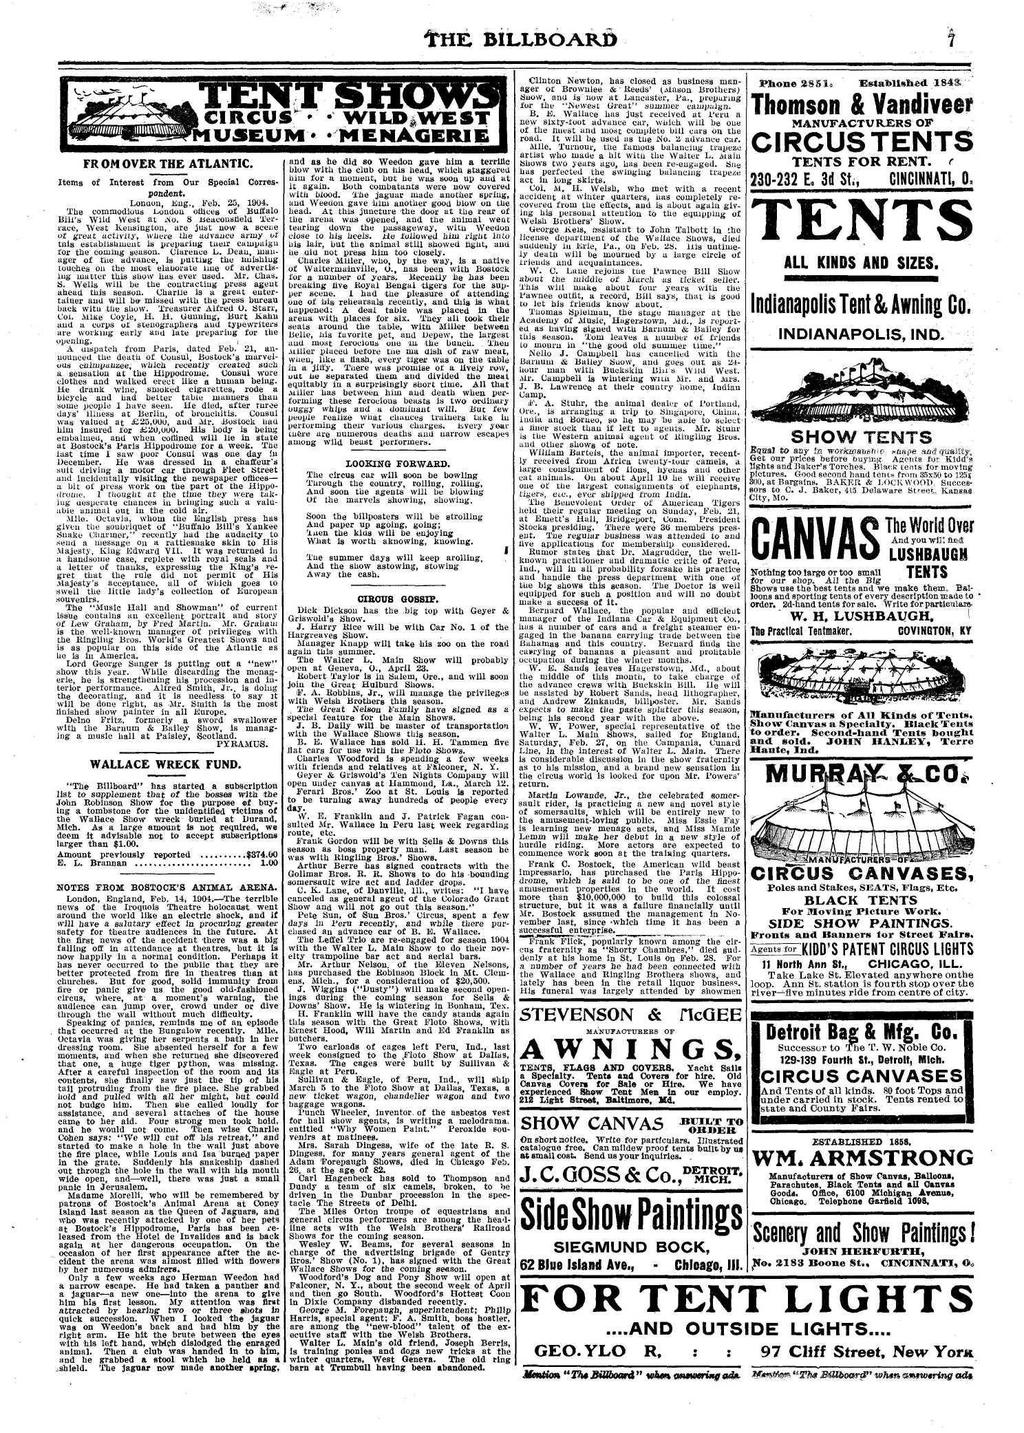 the billboard volume xvi no 11 cincinnati, march pdffr om over the atlantic circus * useum* items of interest from our special